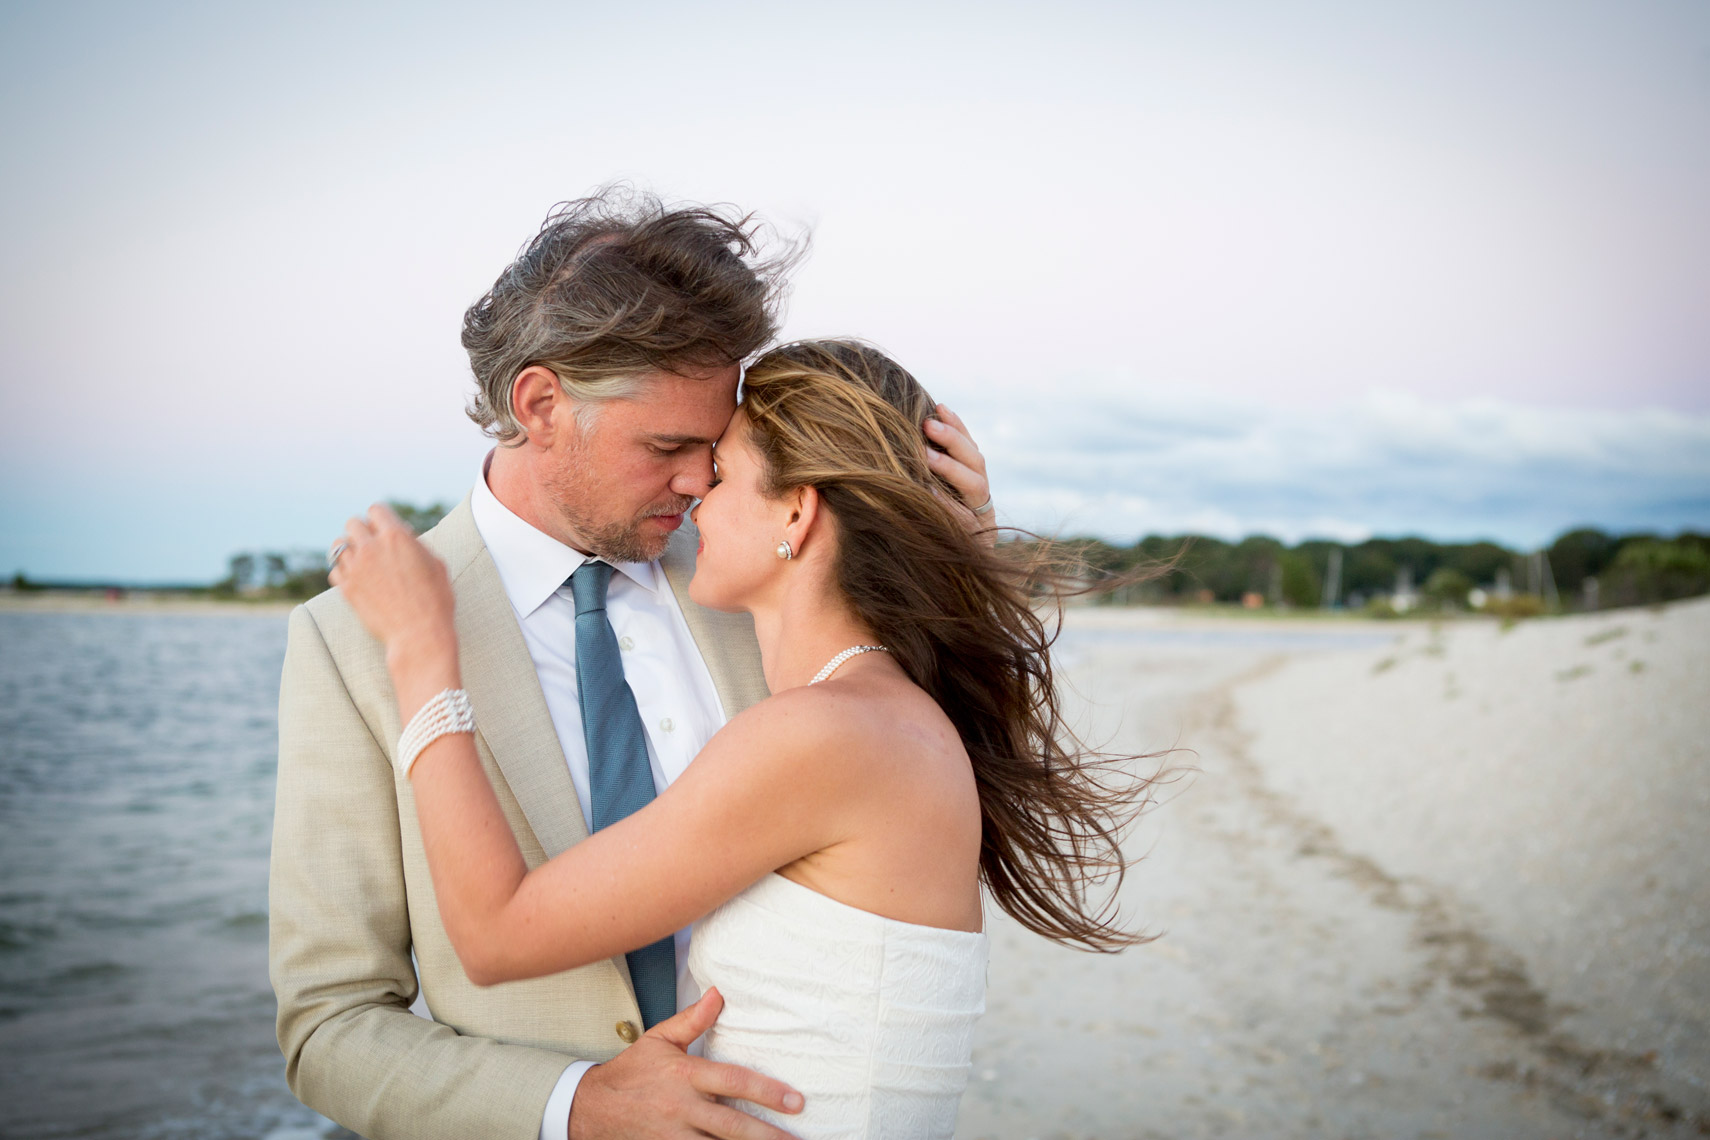 groom-bride-wedding-Hamptons-beach-NewYork-sarma-and-co